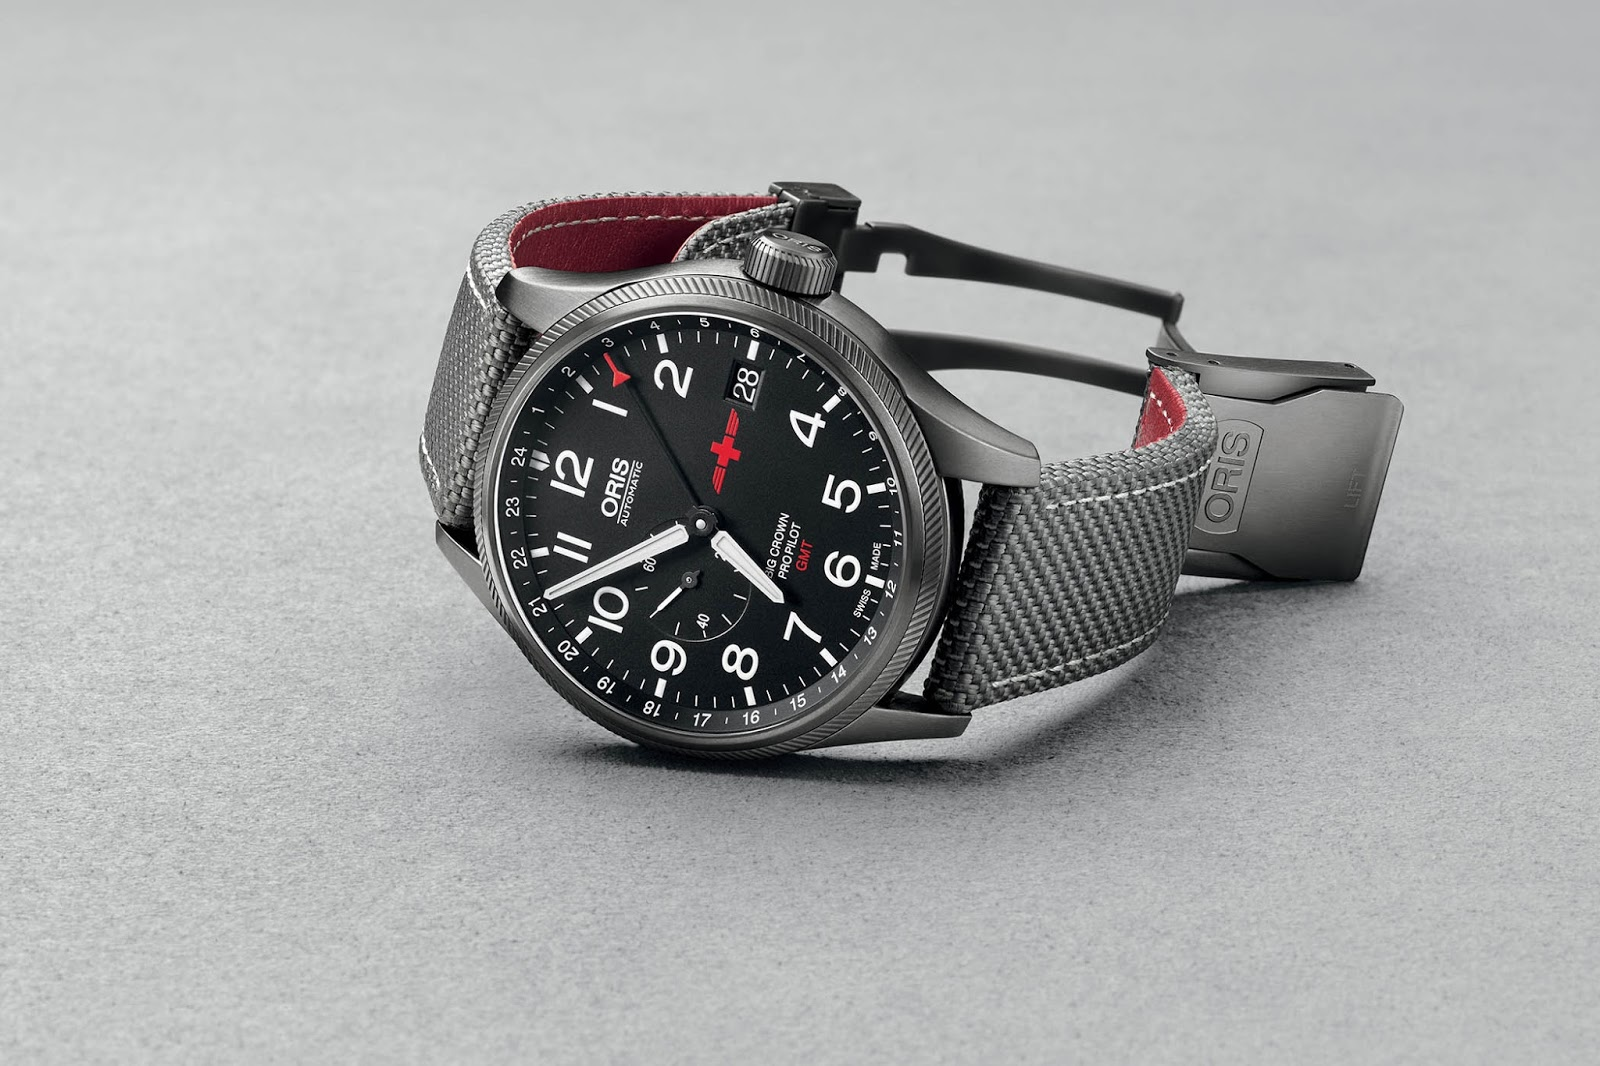 Oris-GMT-Rega-Limited-Edition-2-2.jpg